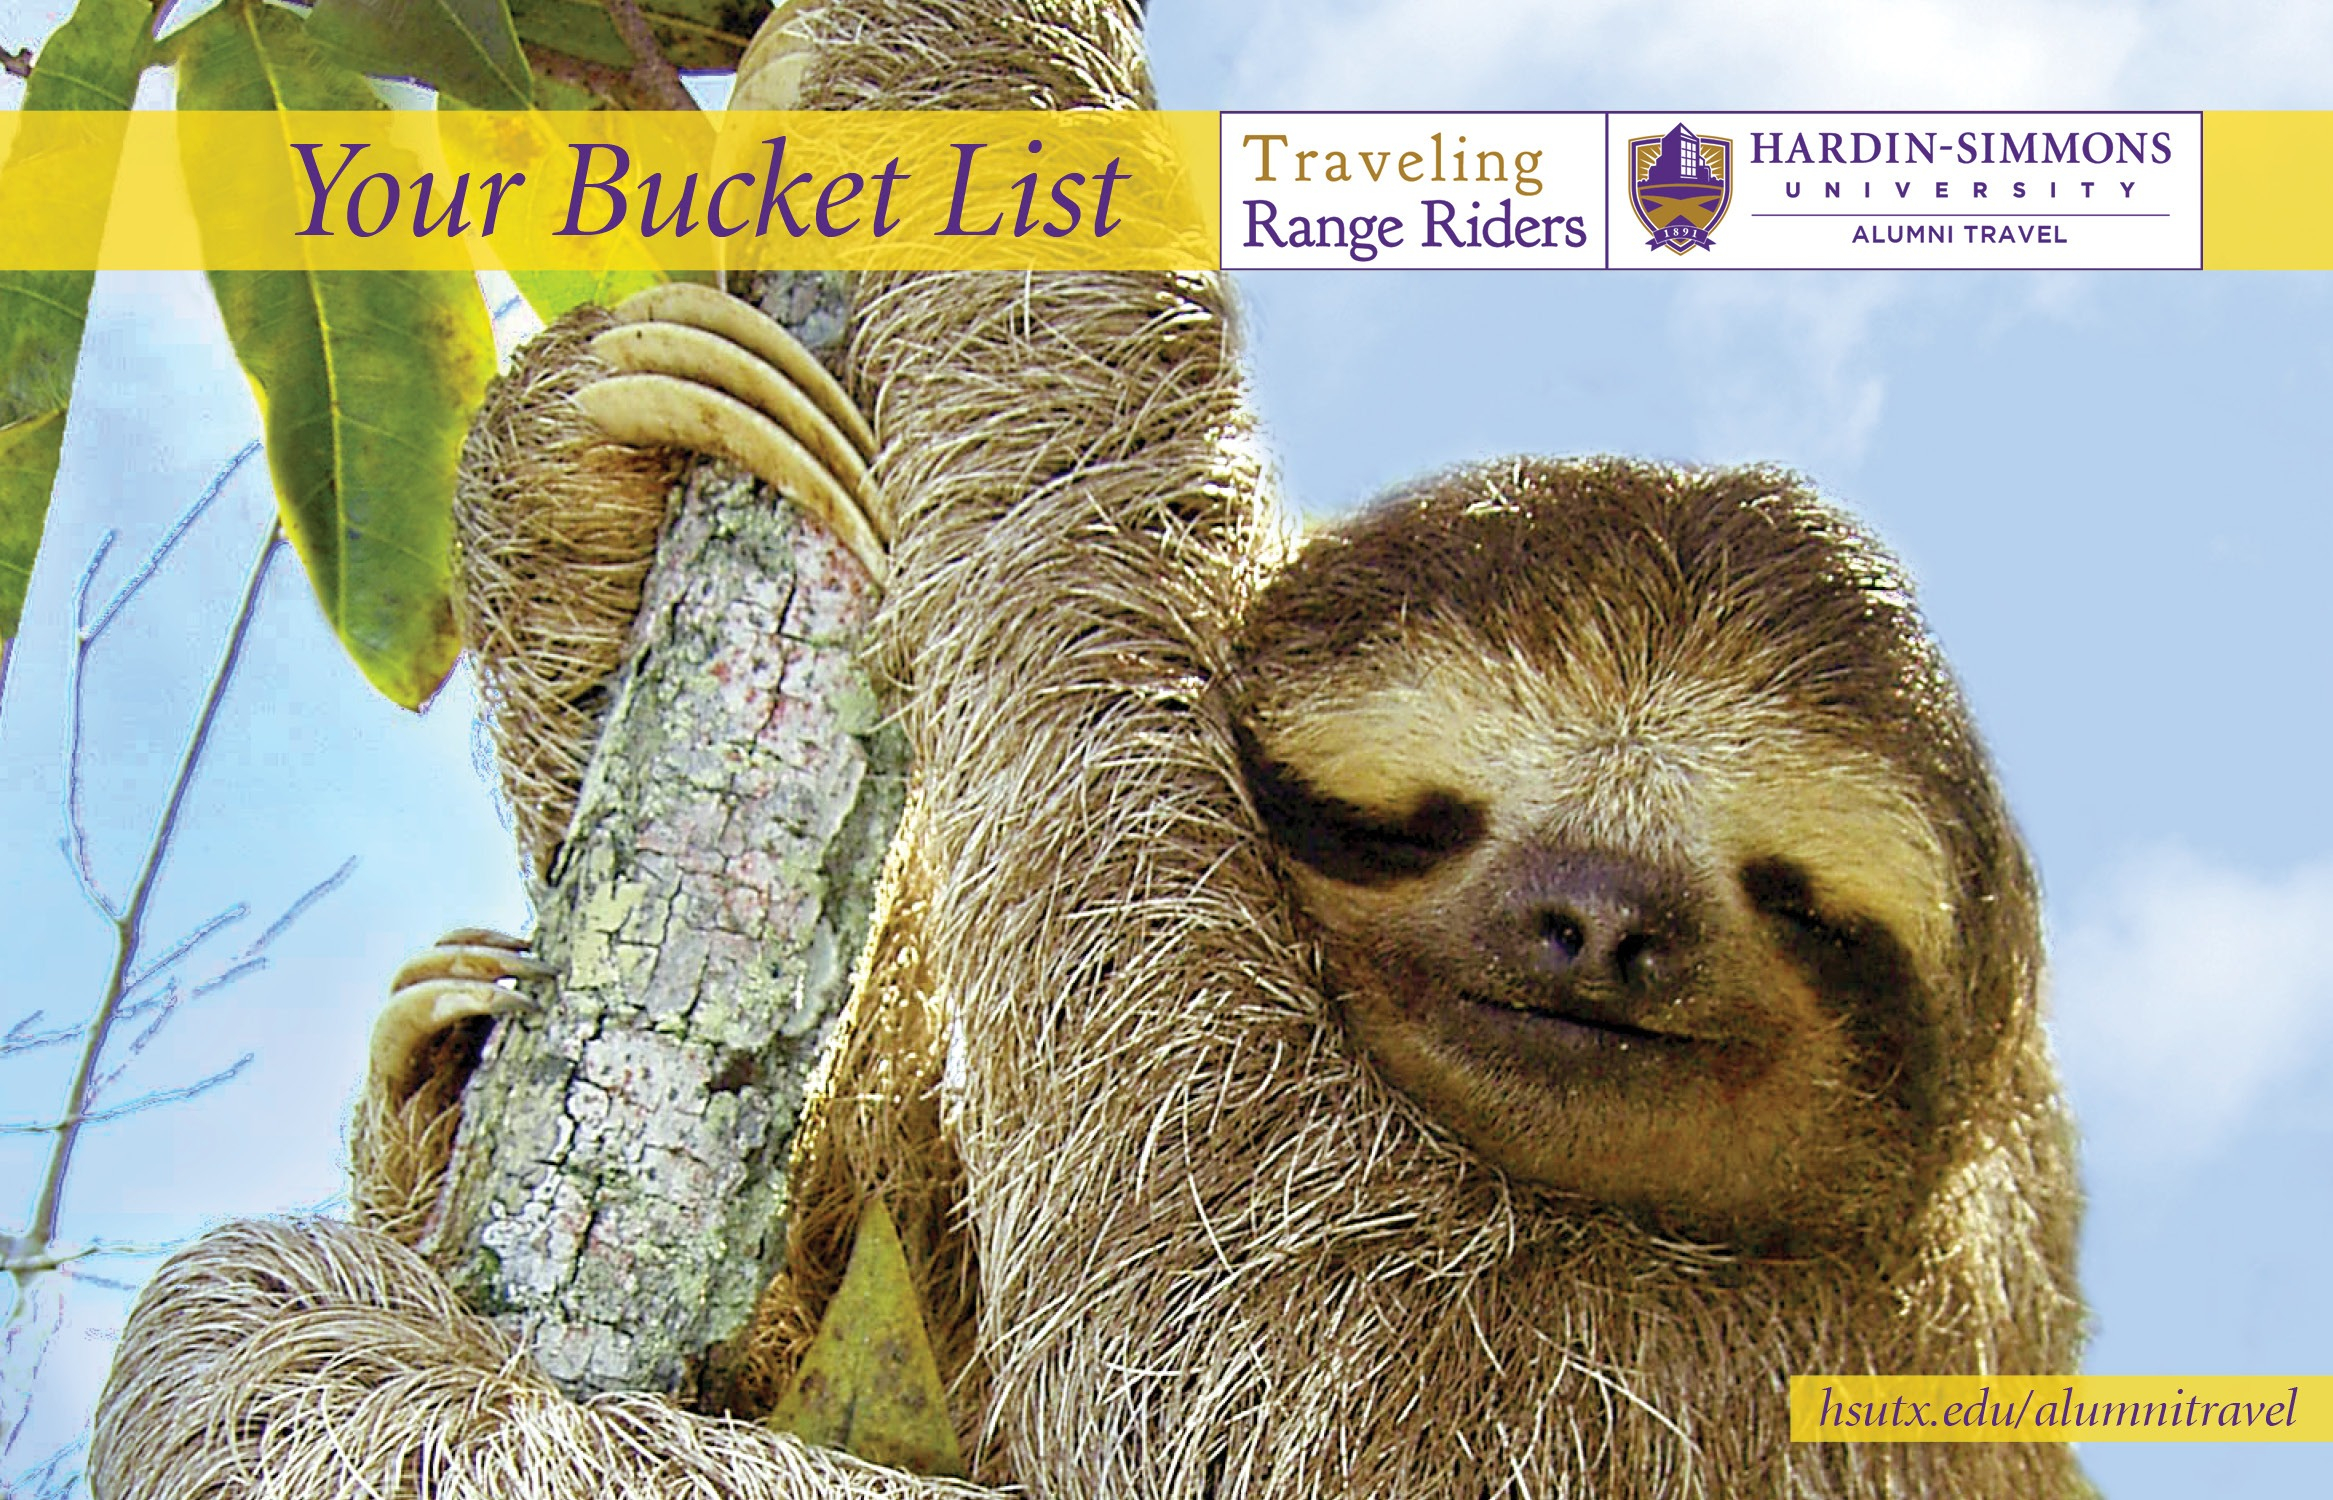 Hsu Traveling Range Riders | Hardin-Simmons University throughout August 2021 Calendar Hsu